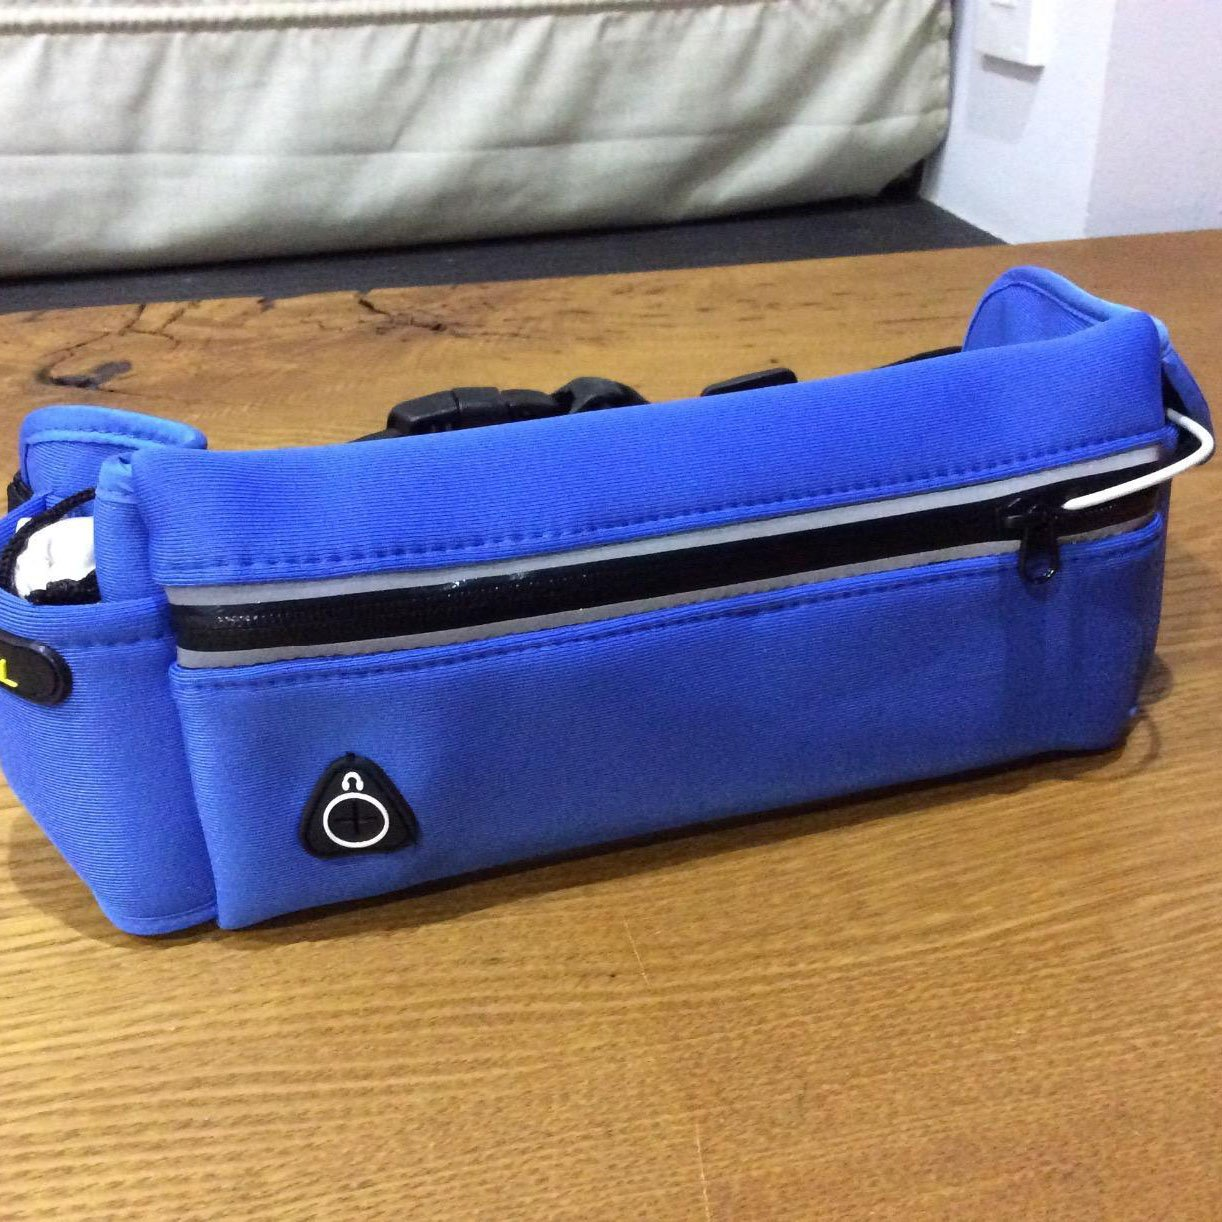 Aoming Running Waist Pack Fanny Pack Running Belt Multi-Function Compact for Carrying All Your Necessities with Eyelet for Earphone Aoming Sports FBA/_5170519